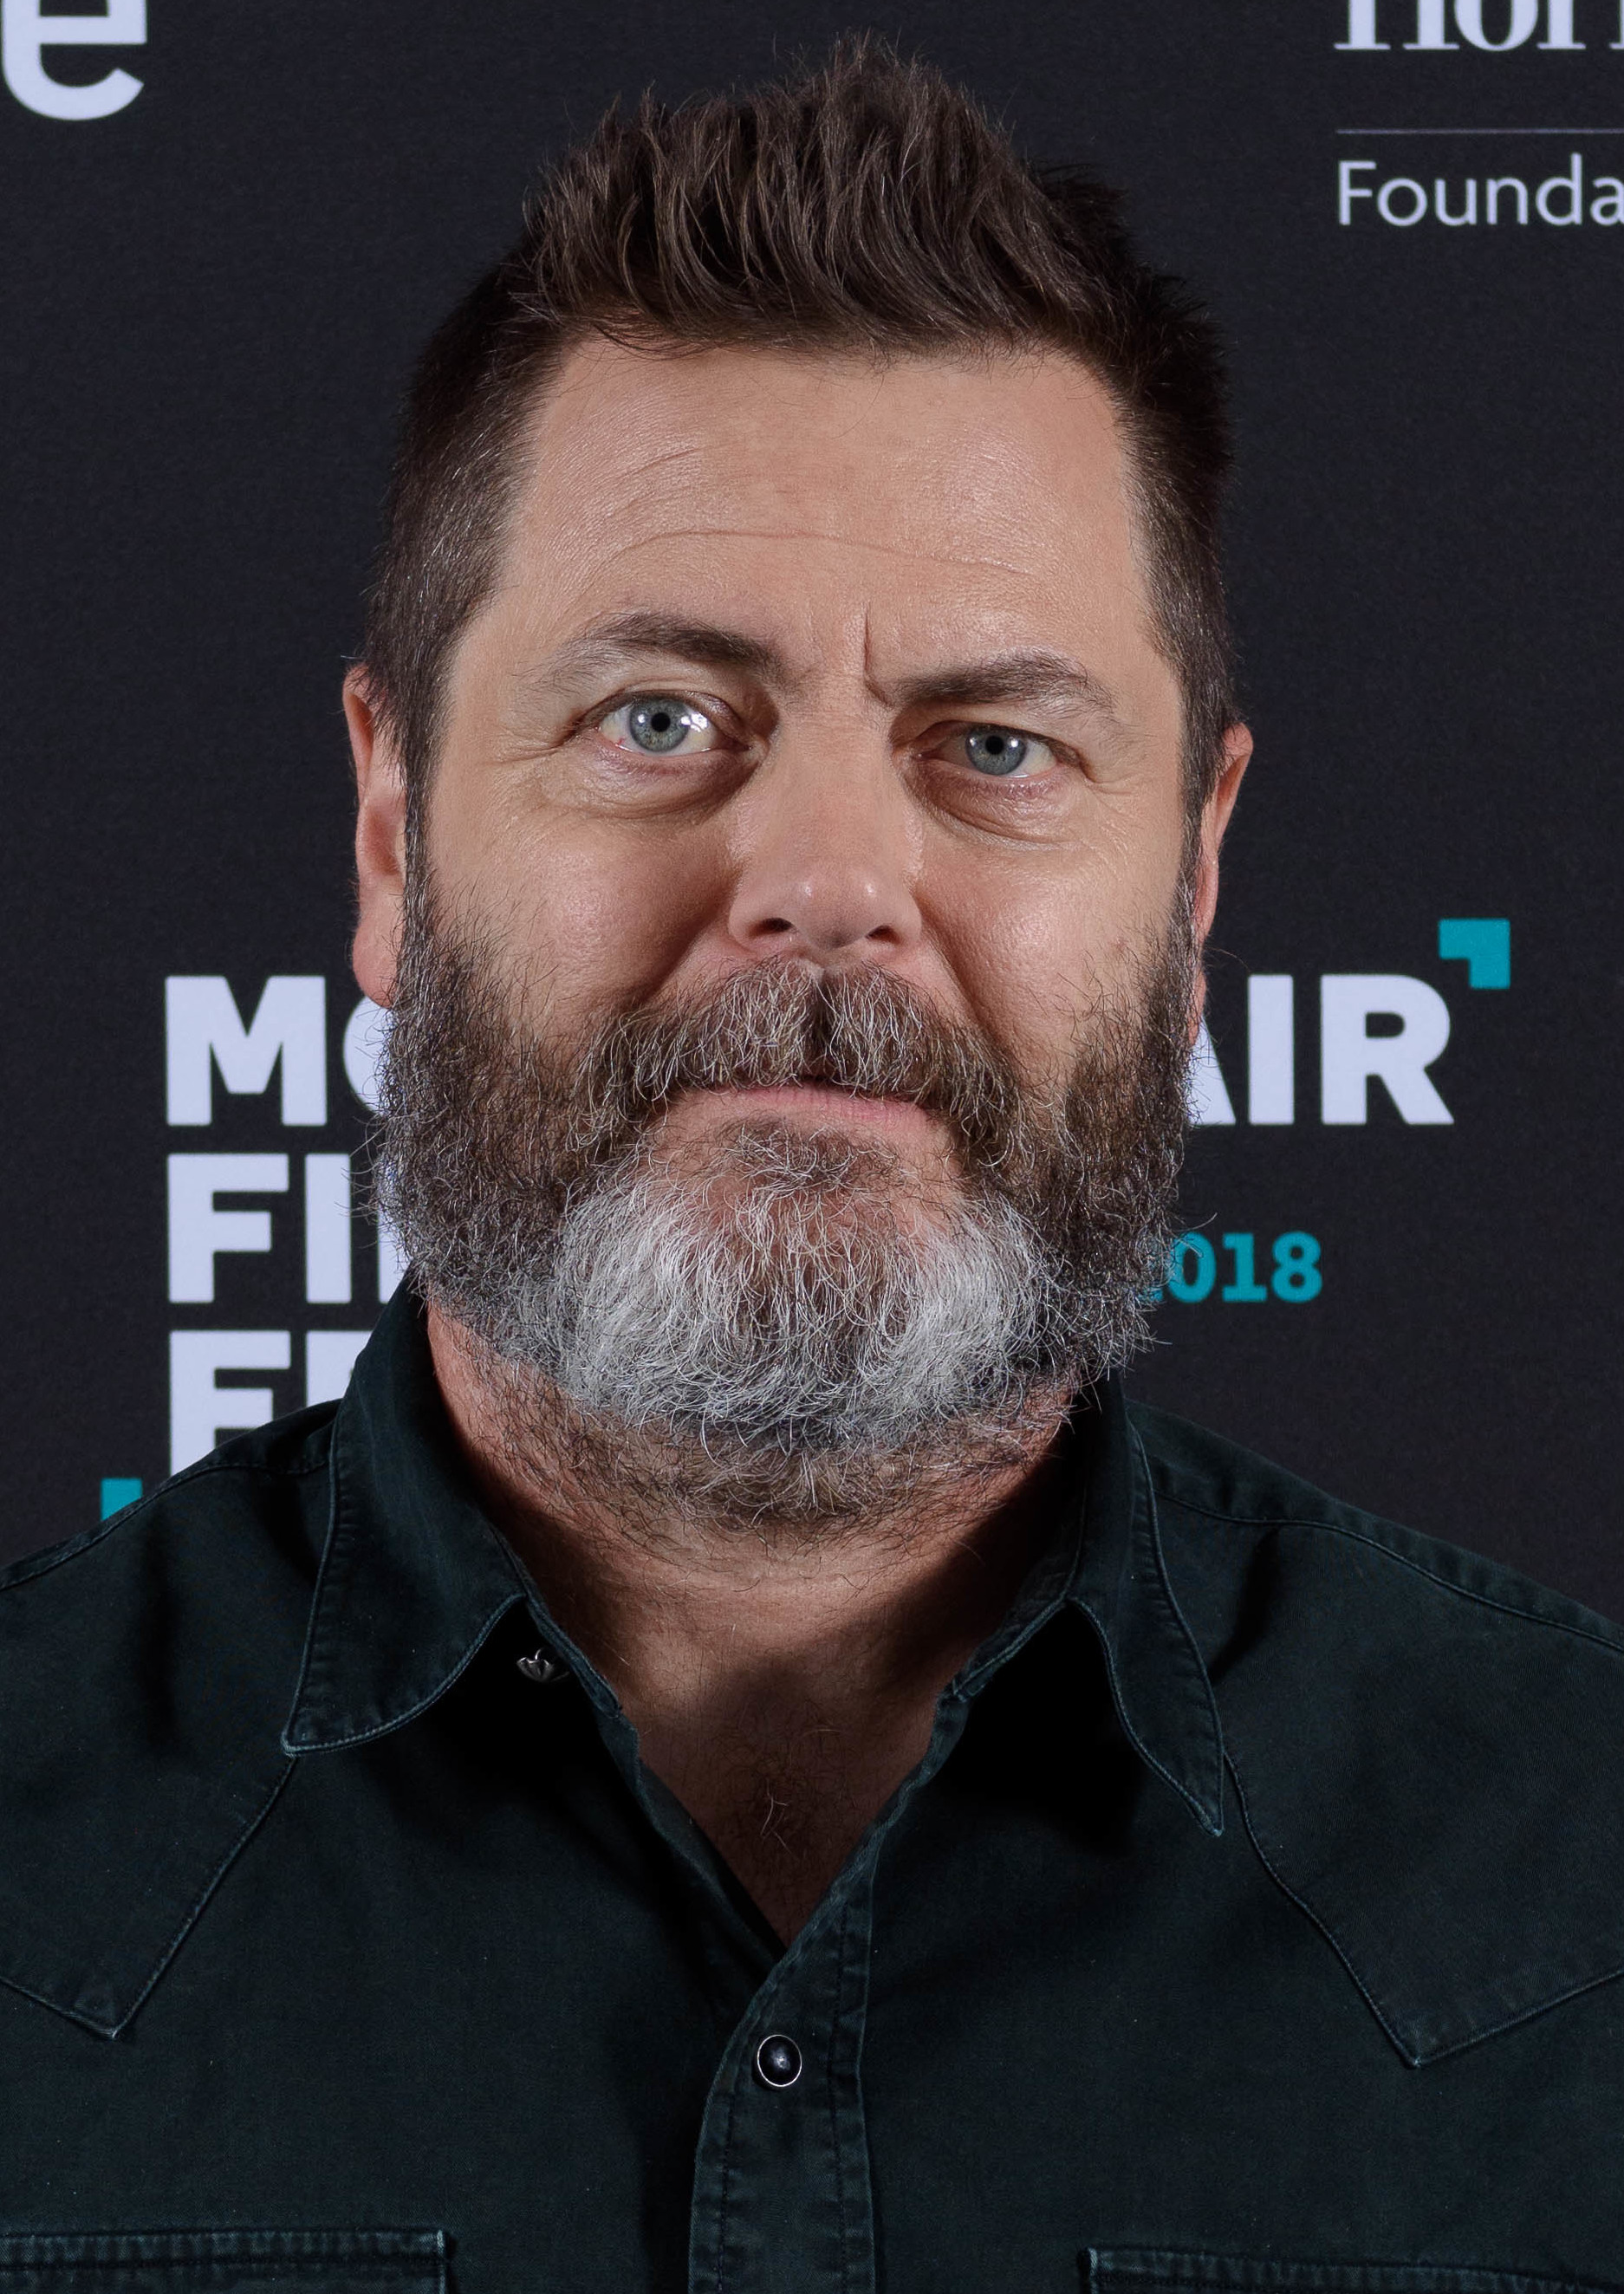 Nick Offerman - Wikipedia